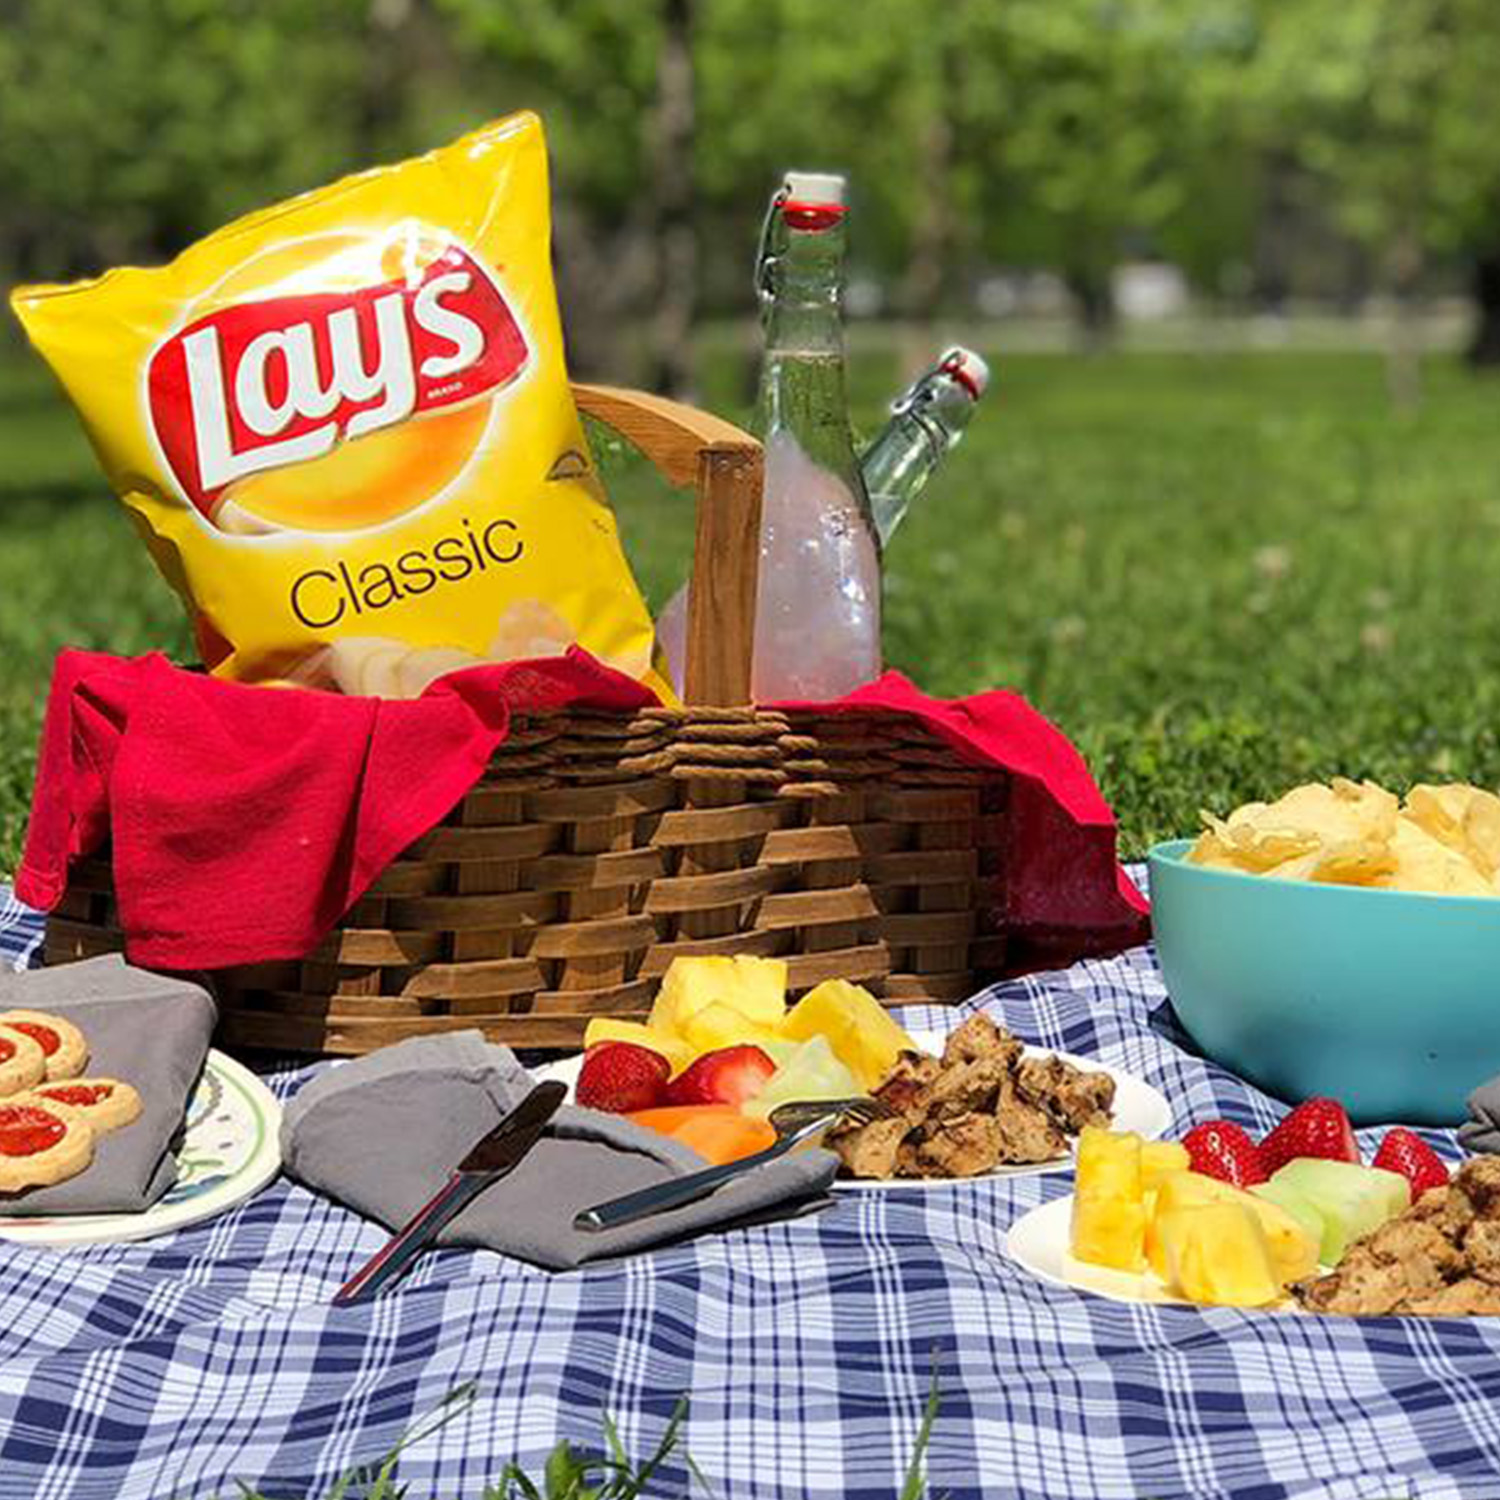 Lay's Classic Party Size Potato Chips, 15 25 Oz